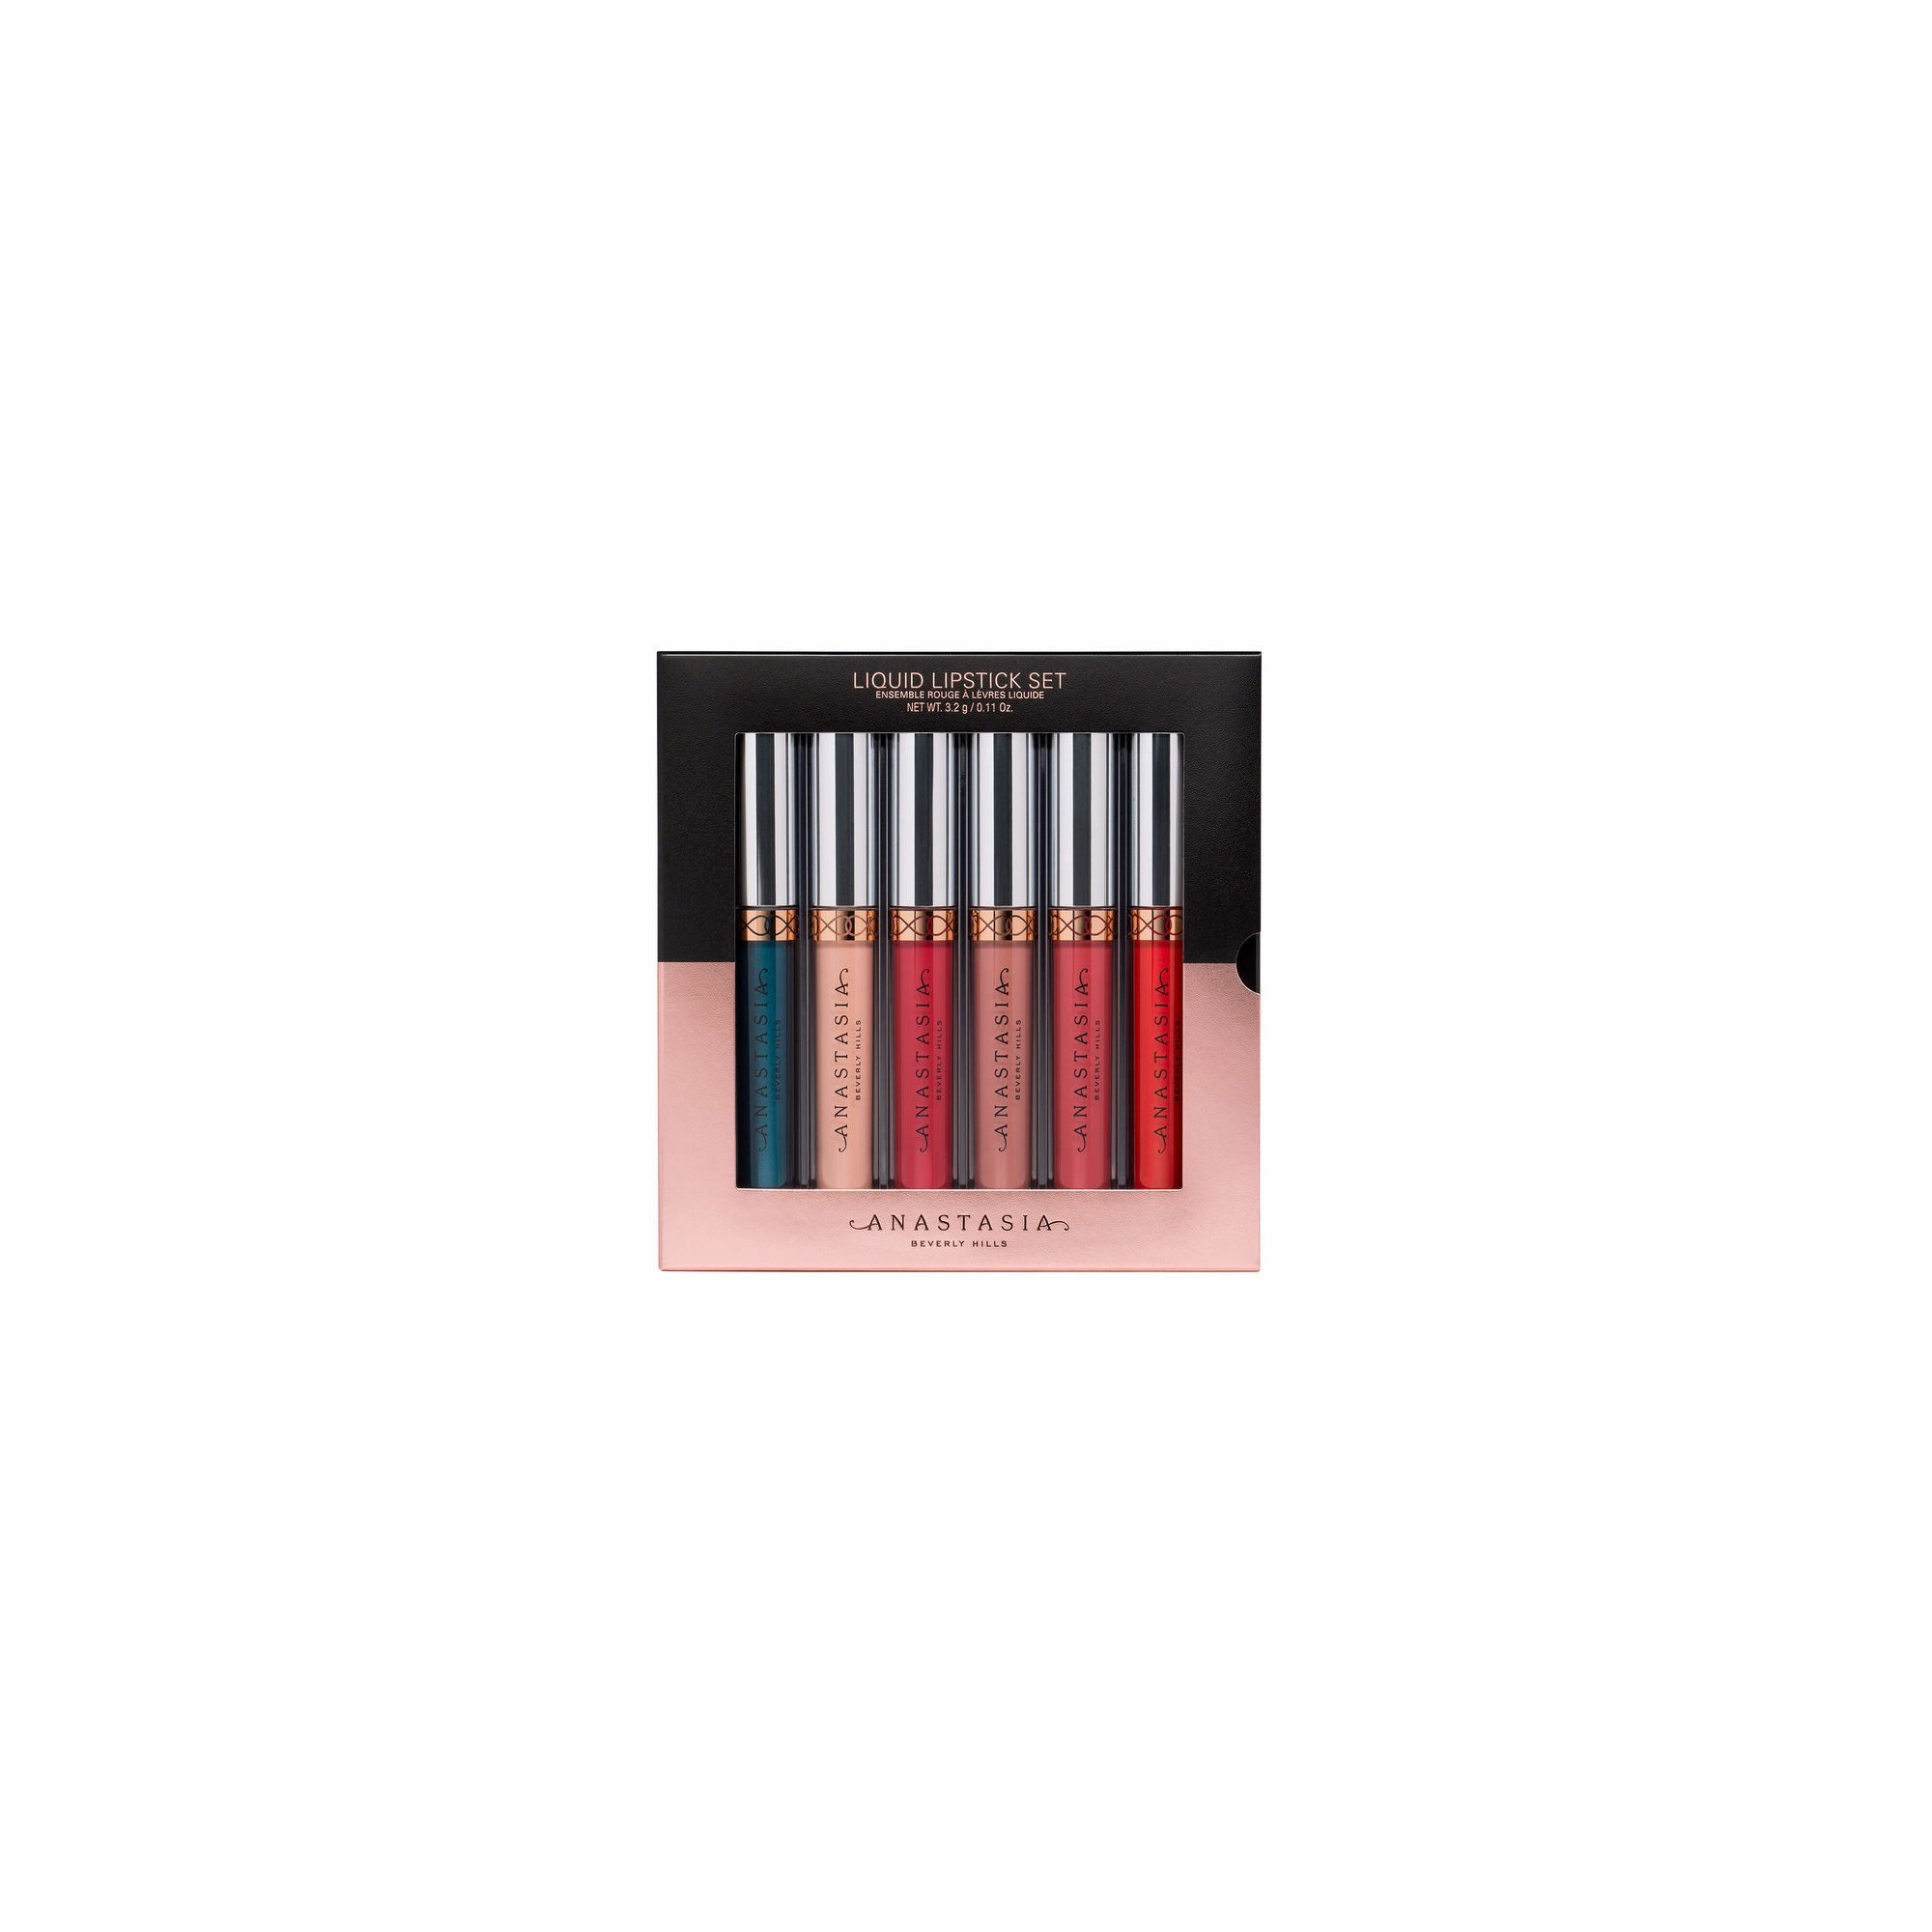 Anastasia Beverly Hills Liquid Lipstick 6 Pc Set Full Size